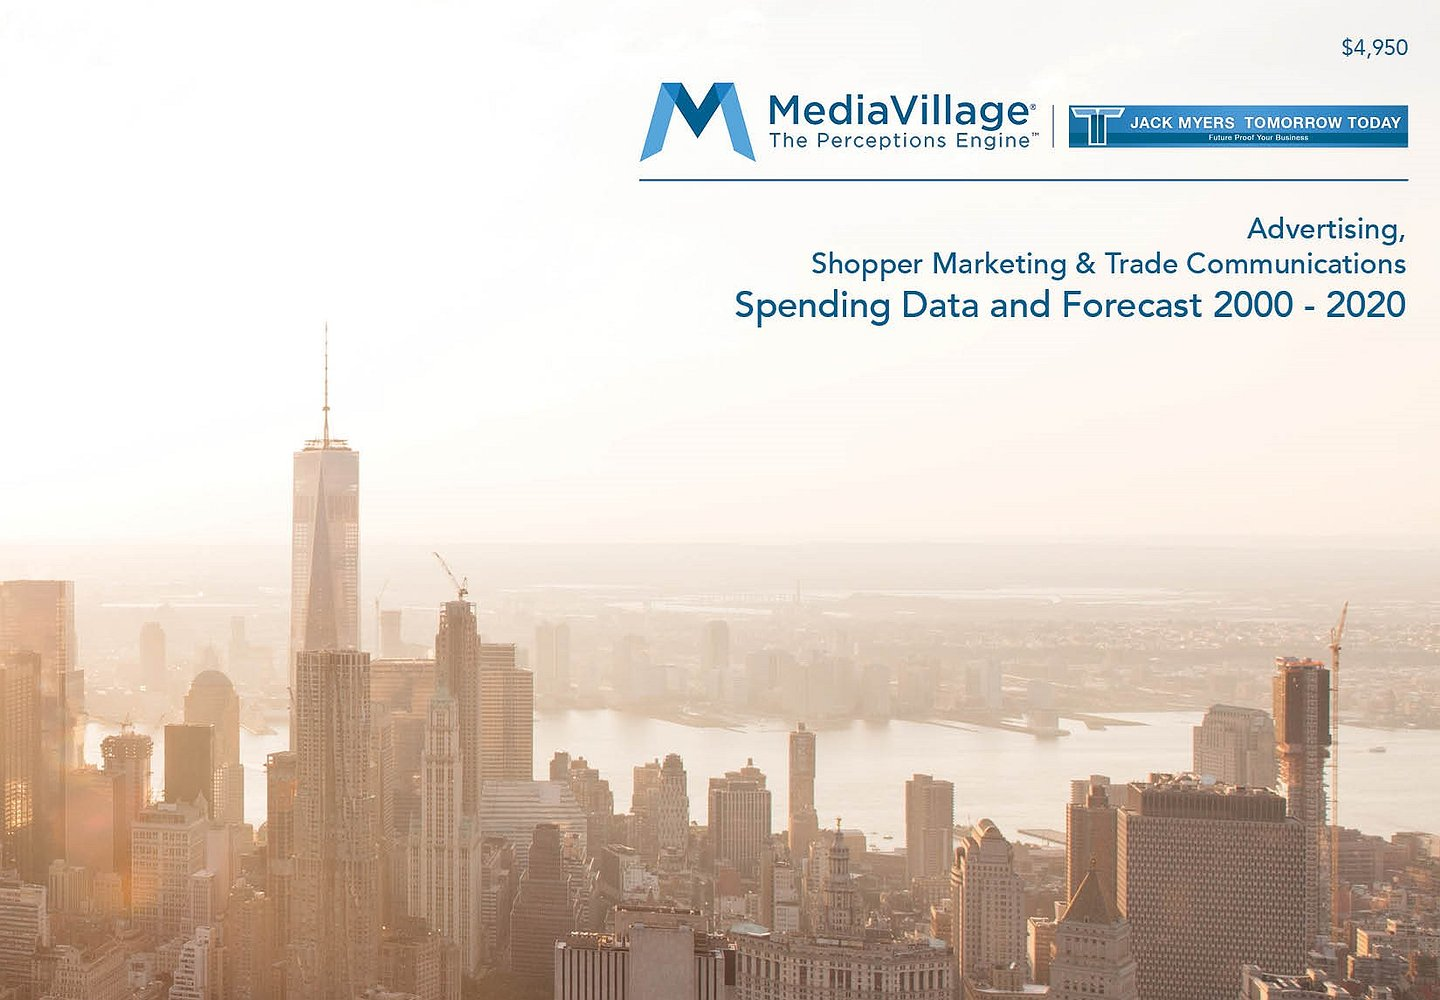 Download Today: Mobile & Apps* Share of Total U.S. Spend Expected to Double 2016-2020